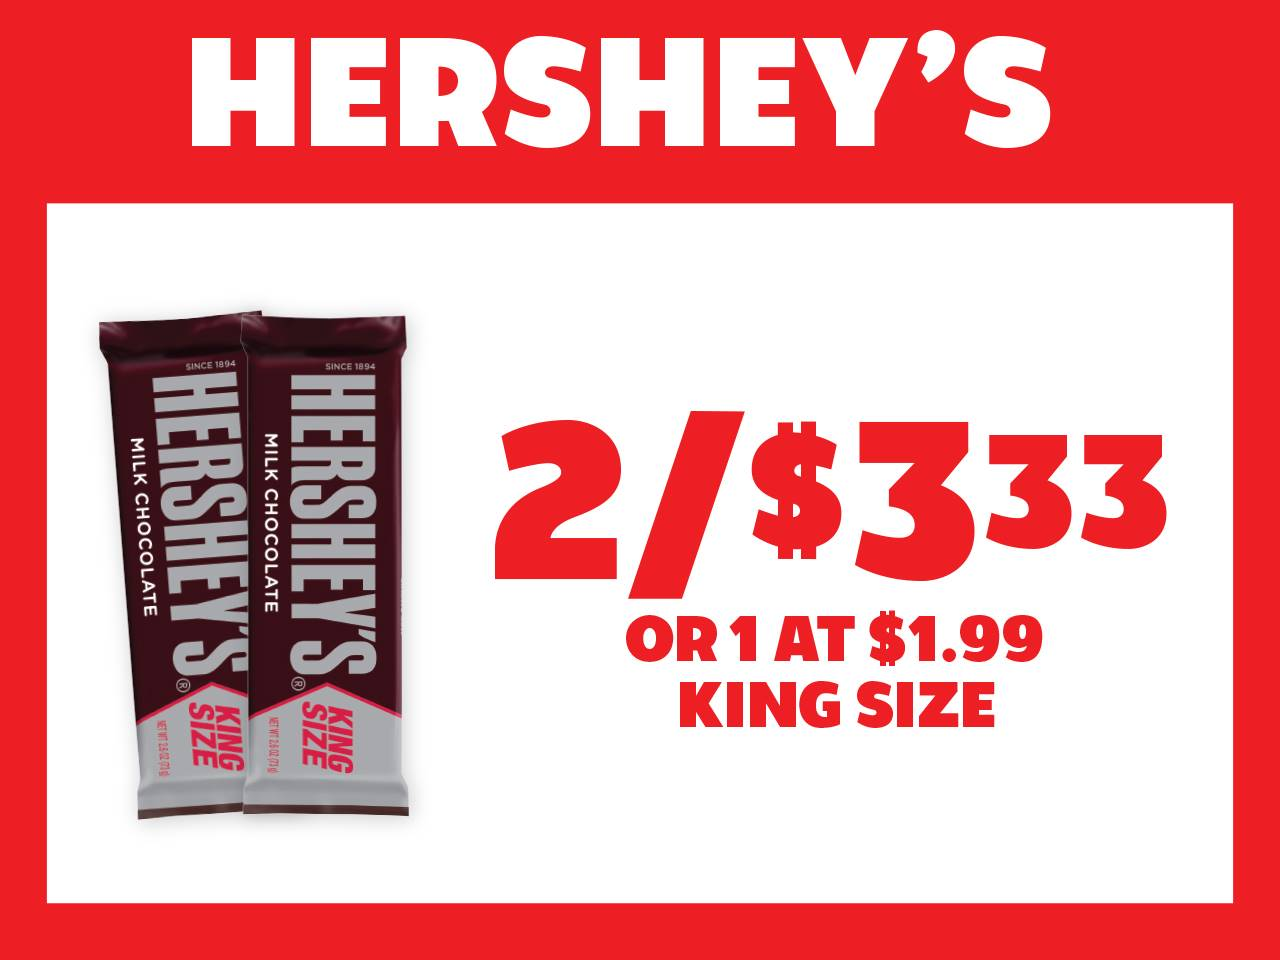 2 King Size Hershey's Bars for $3.33 or 1 at $1.99